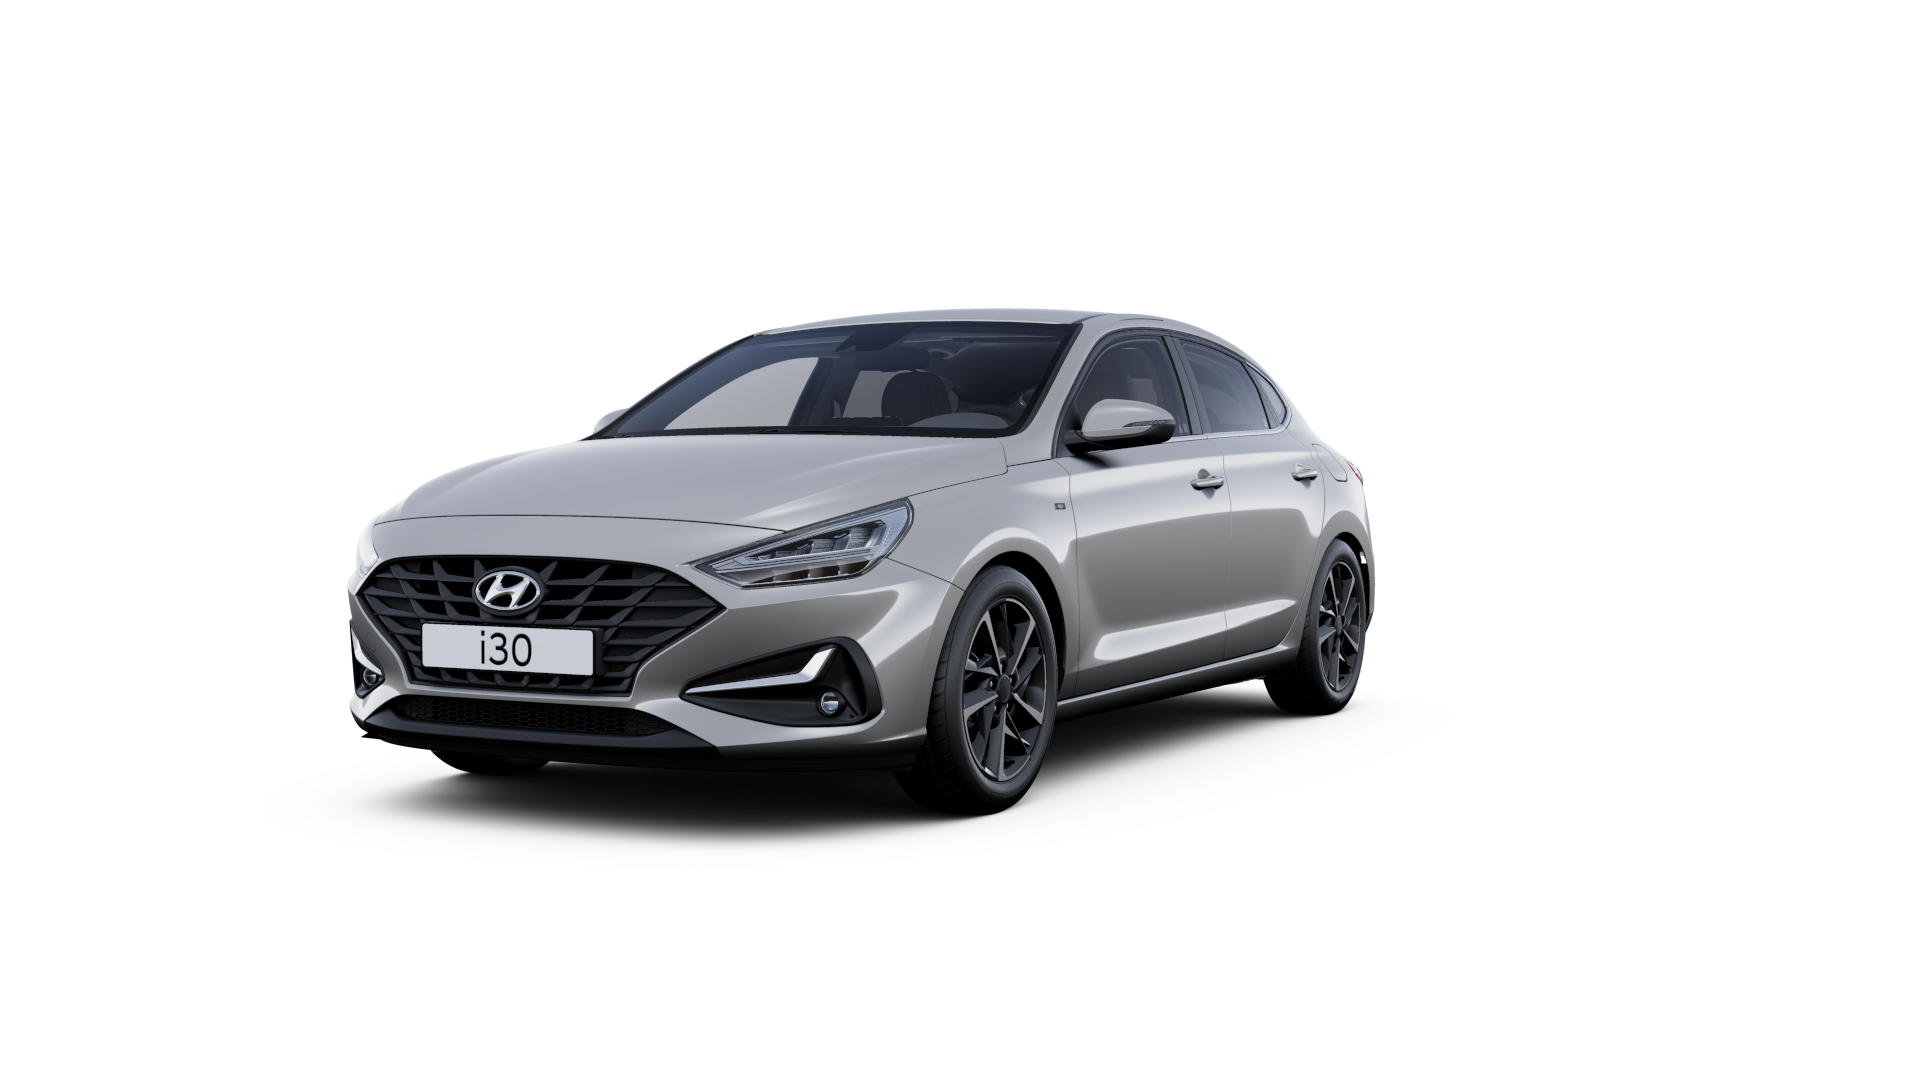 Front side view of the new Hyundai i30 Fastback in the colour Shimmering Silver.